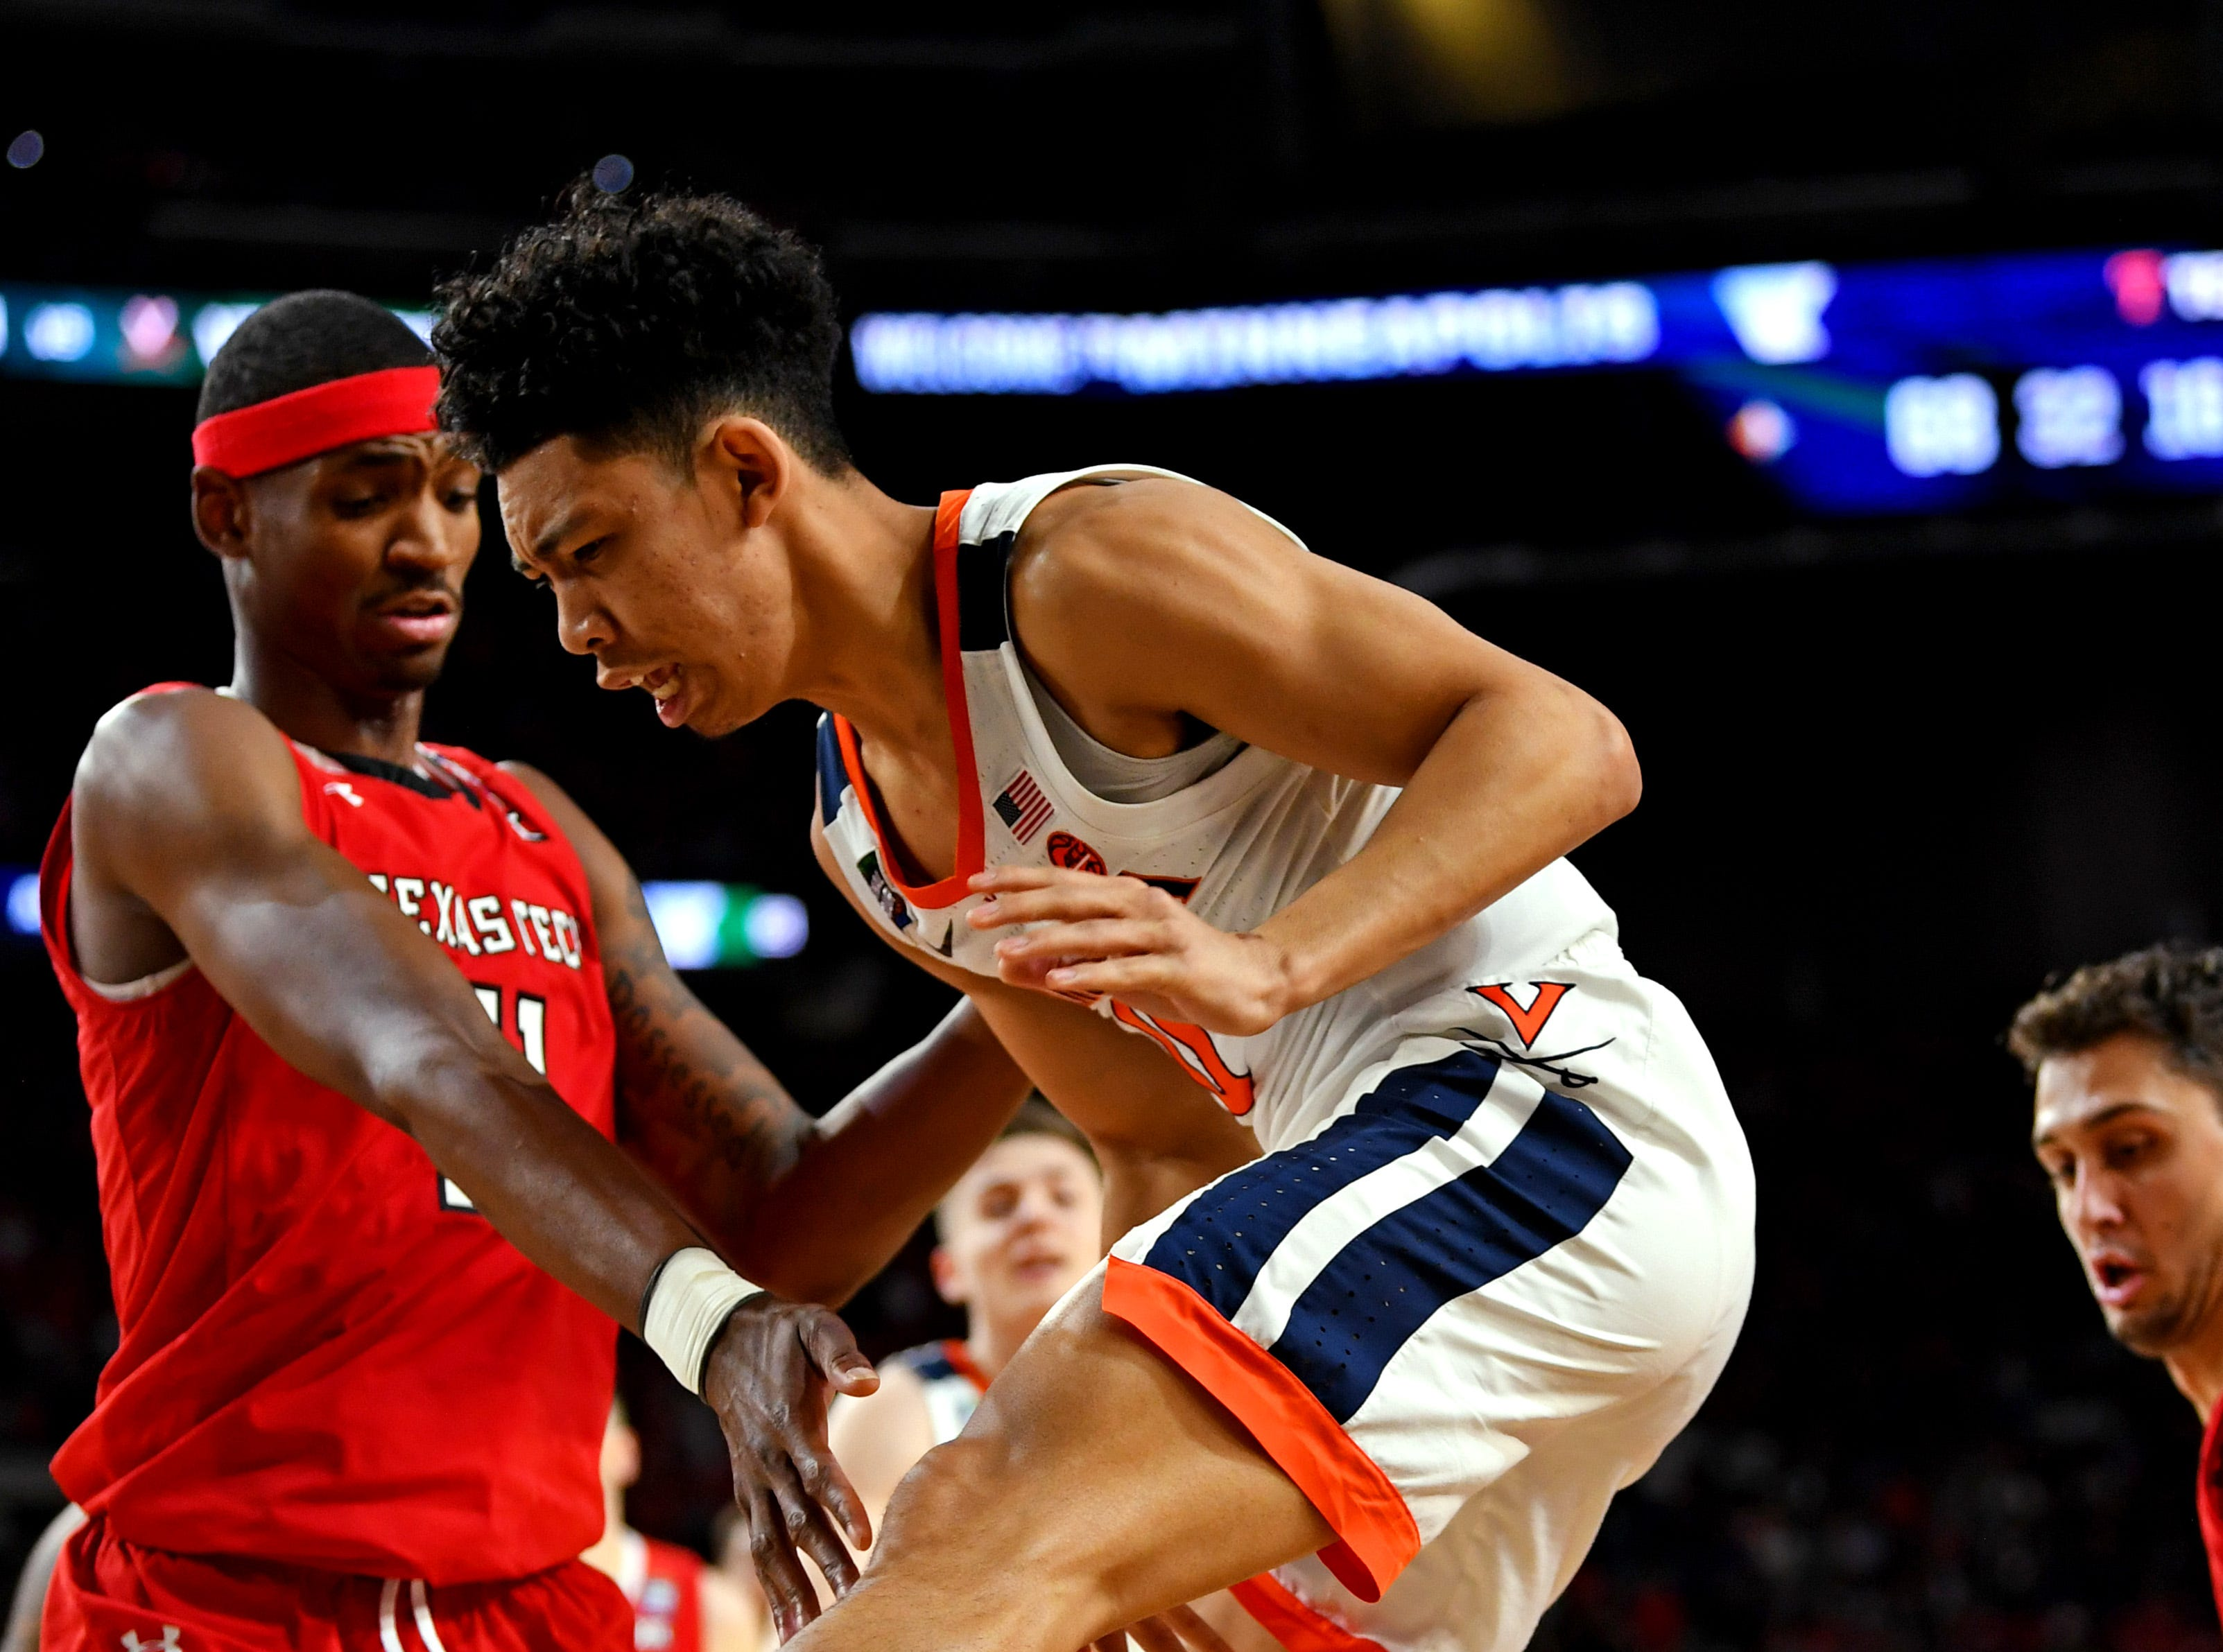 Apr 8, 2019; Minneapolis, MN, USA; Texas Tech Red Raiders forward Tariq Owens (11) knocks the ball away from Virginia Cavaliers guard Kihei Clark (0) \1h\ in the championship game of the 2019 men's Final Four at US Bank Stadium. Mandatory Credit: Bob Donnan-USA TODAY Sports